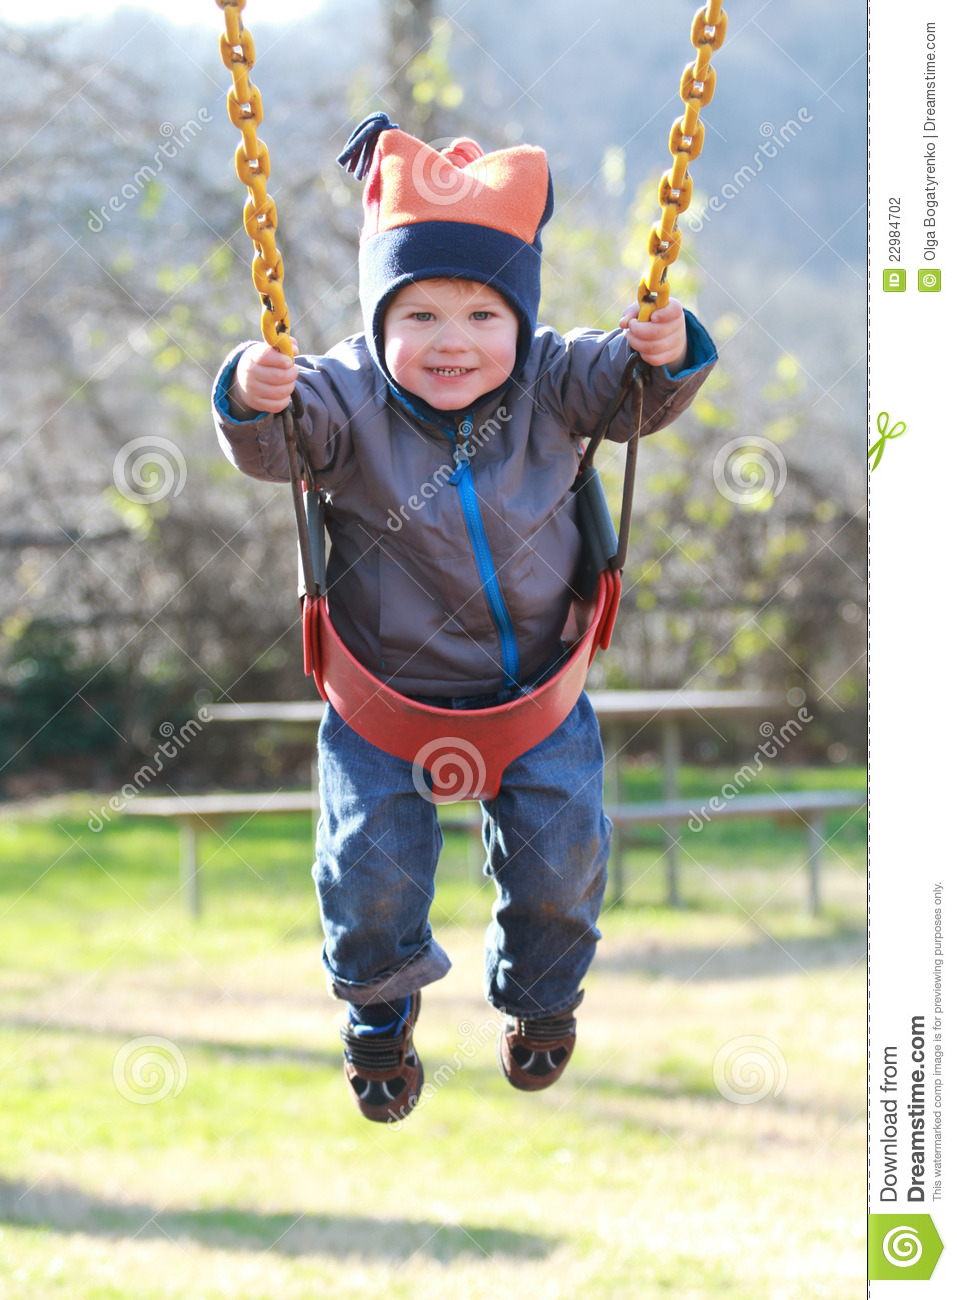 Child On Swing At A Playground Stock Photo - Image of ...